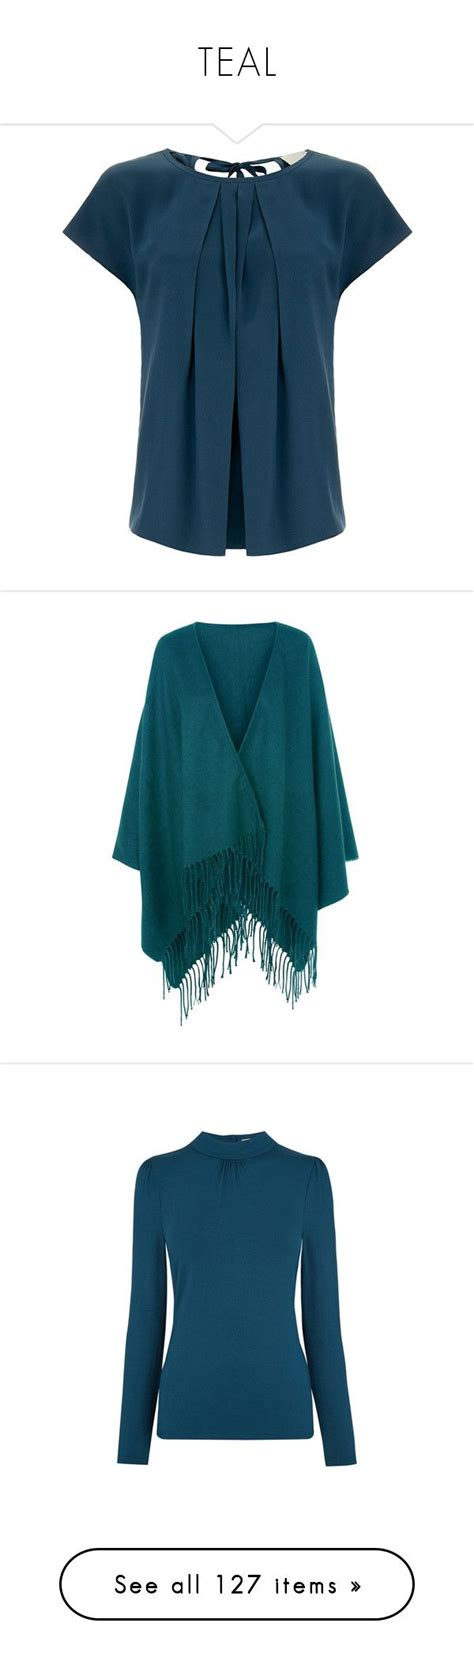 teal blouses 17 best ideas about teal blouse on